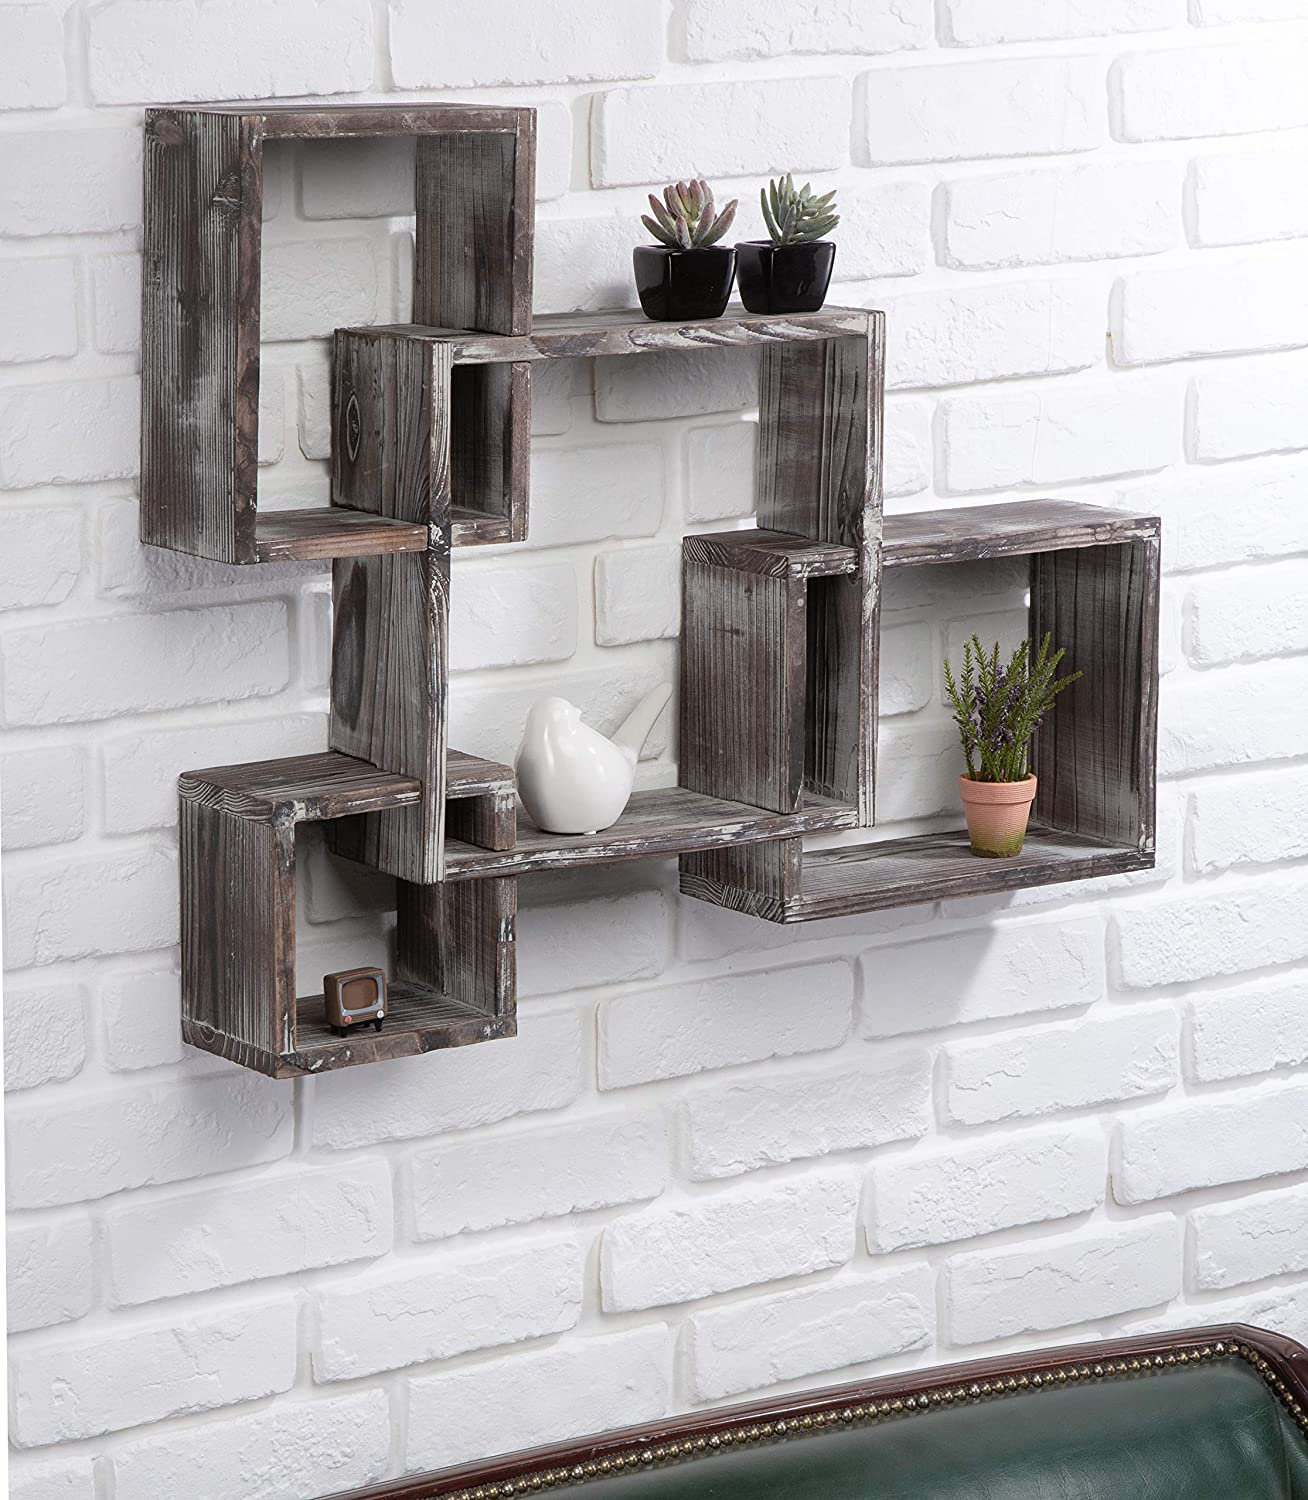 J JACKCUBE DESIGN Rustic Wood Shelves -Floating Intersecting Wall Shelves with 4 Cubes, Wall-Mounted Square, Antique Style Shadowbox, Decorative Collection Display Organizer. MK512A